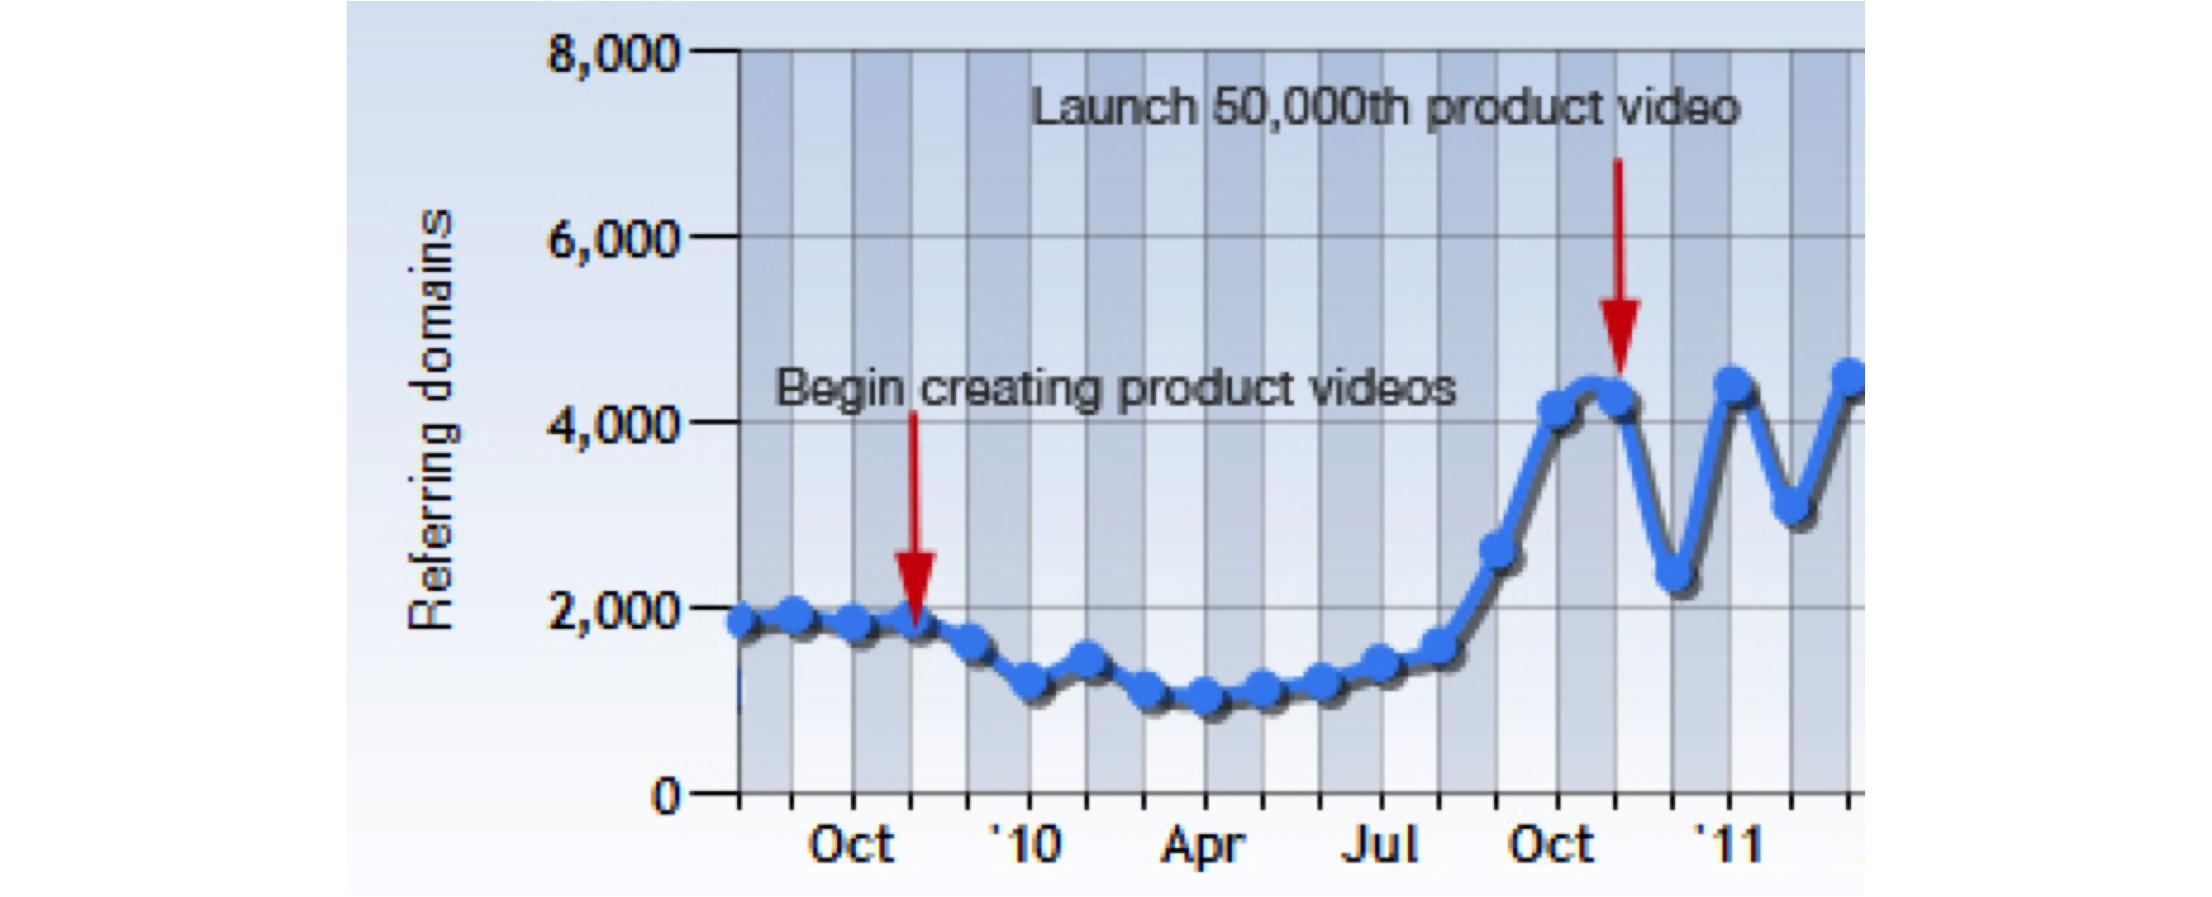 How to Leverage Investment in Video to Build More Links